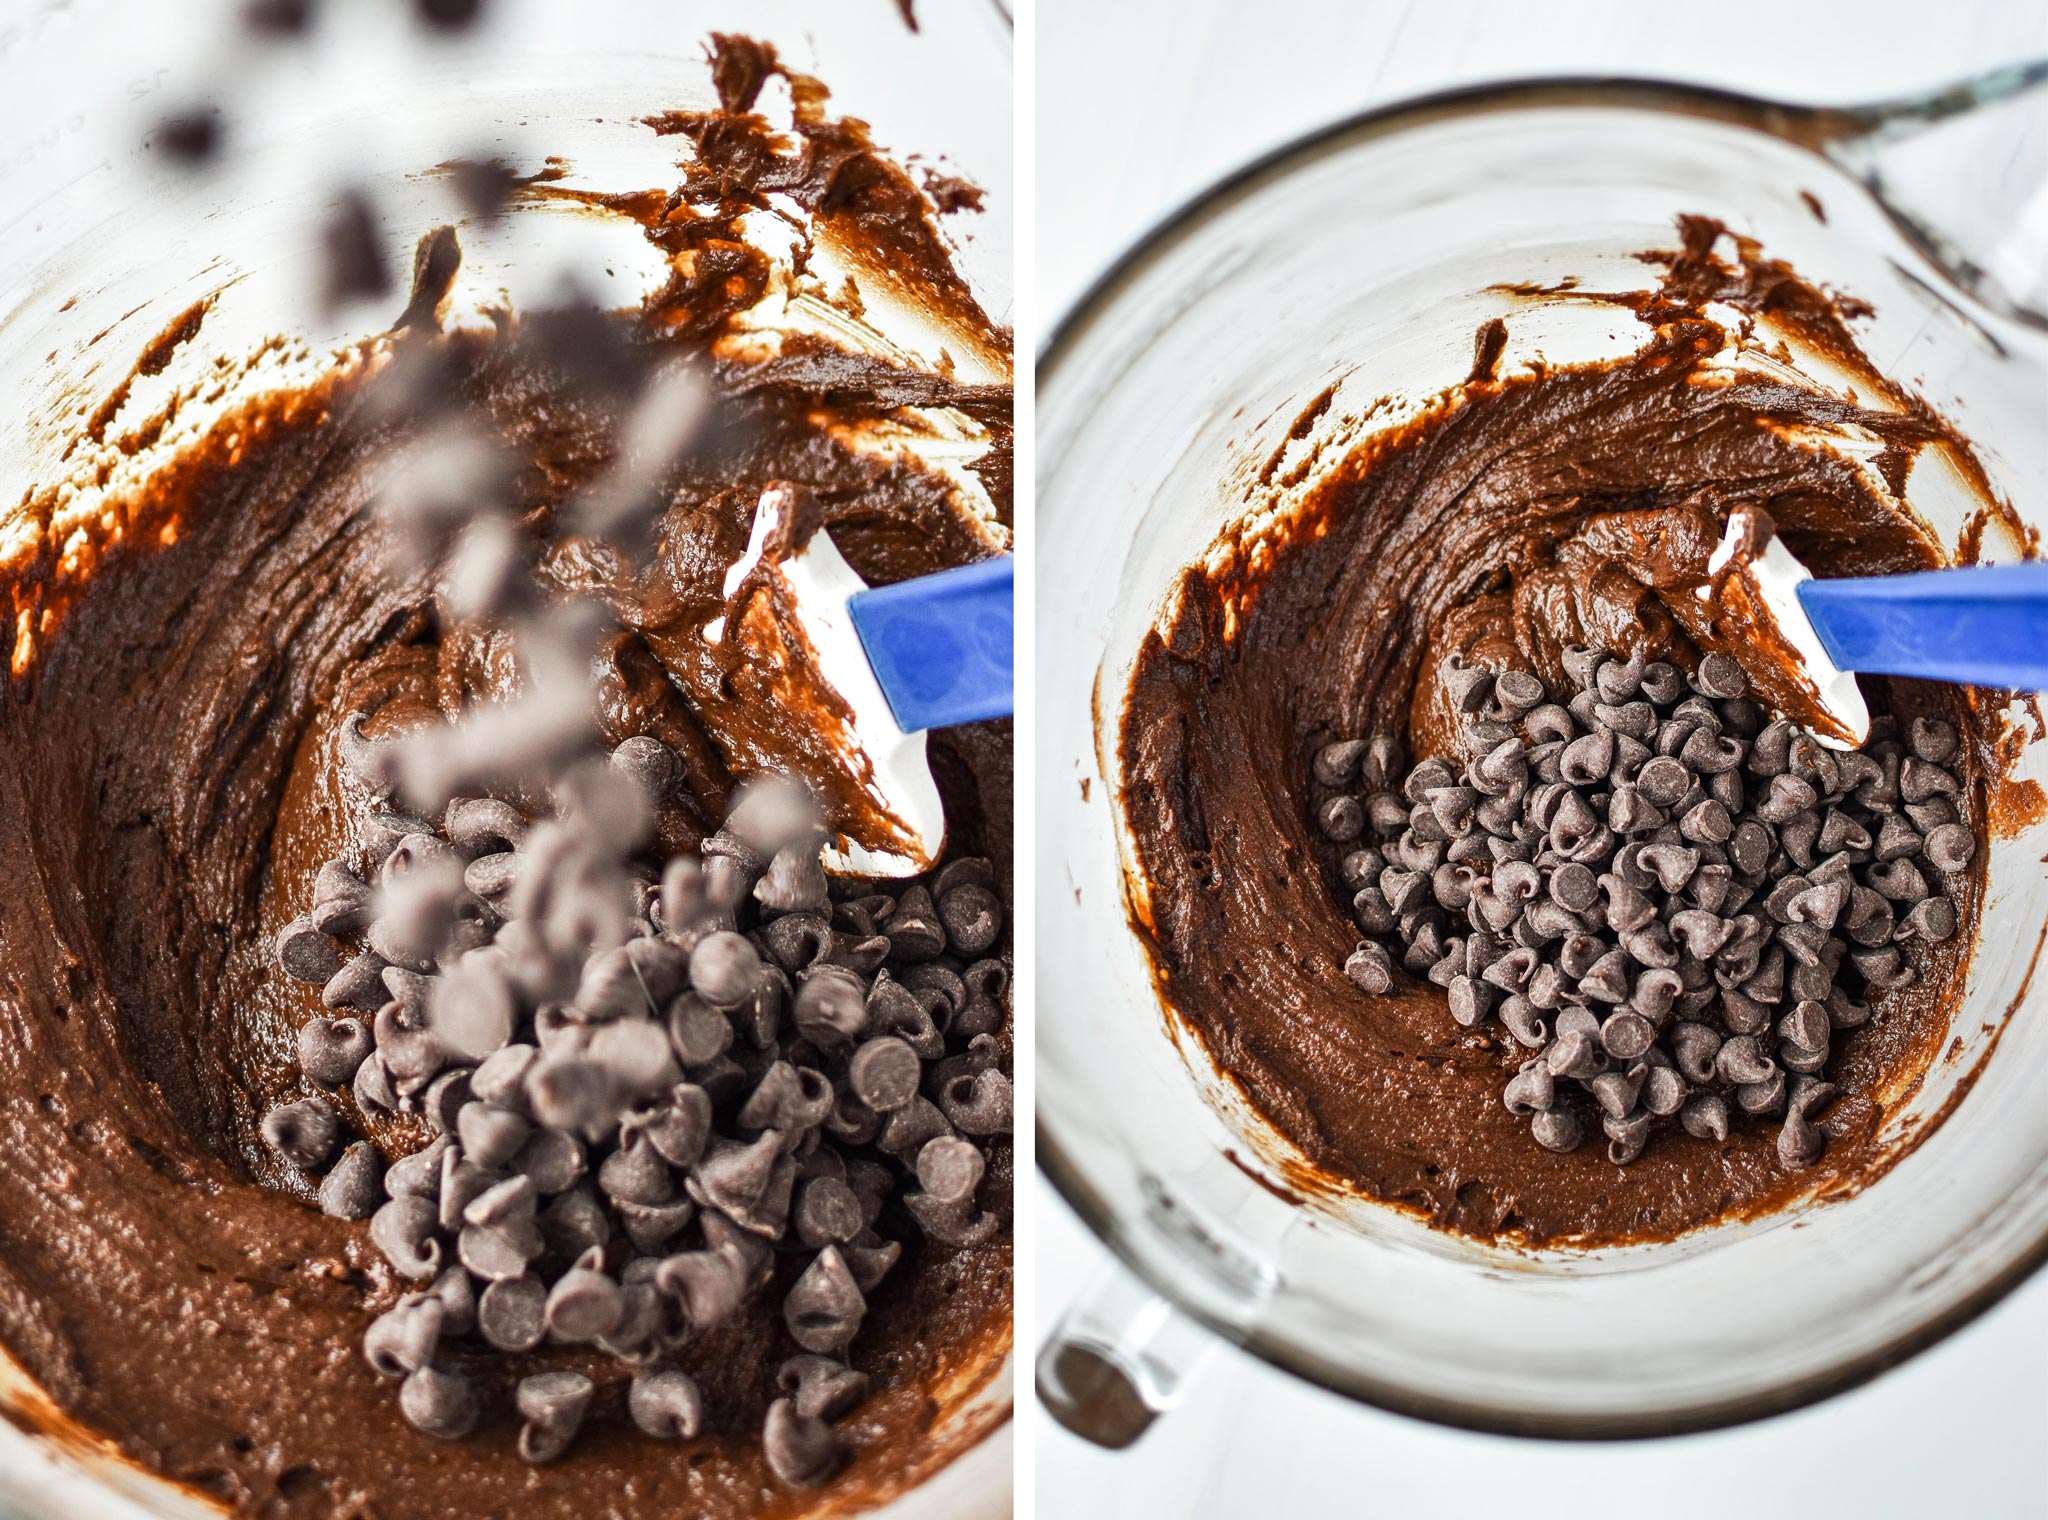 Adding chocolate chips to the batter for the sweet potato brownie skillet